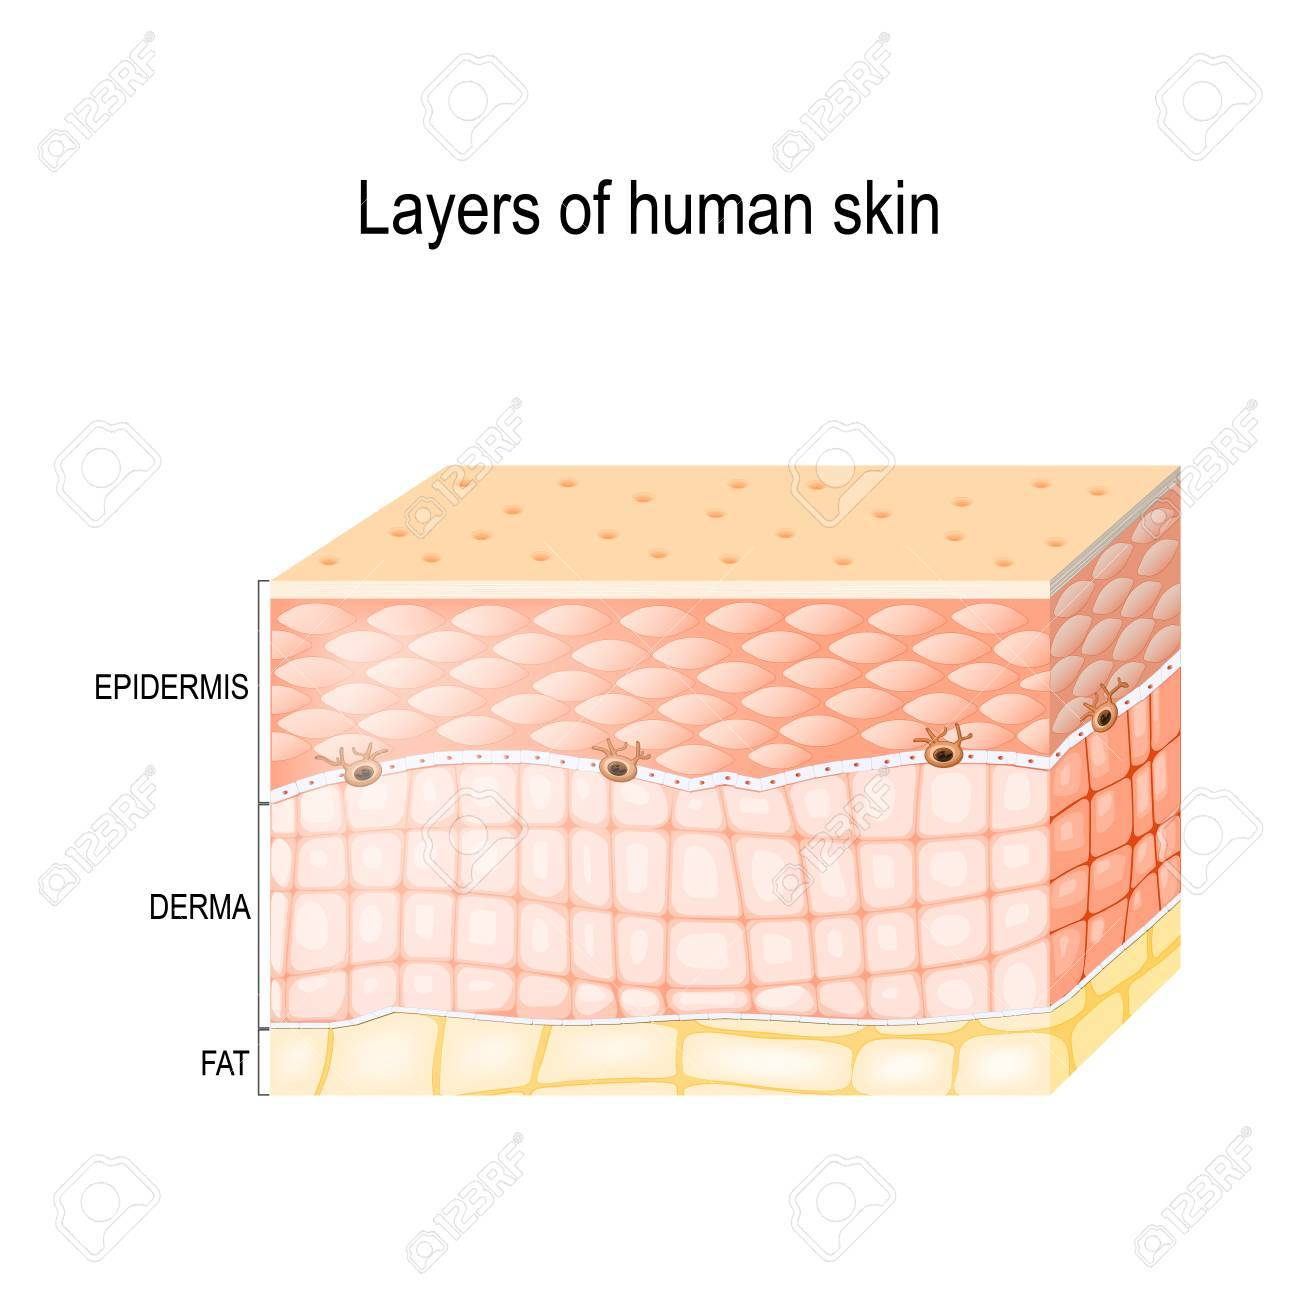 layers of skin  epidermis (horny layer and granular layer), dermis  (connective